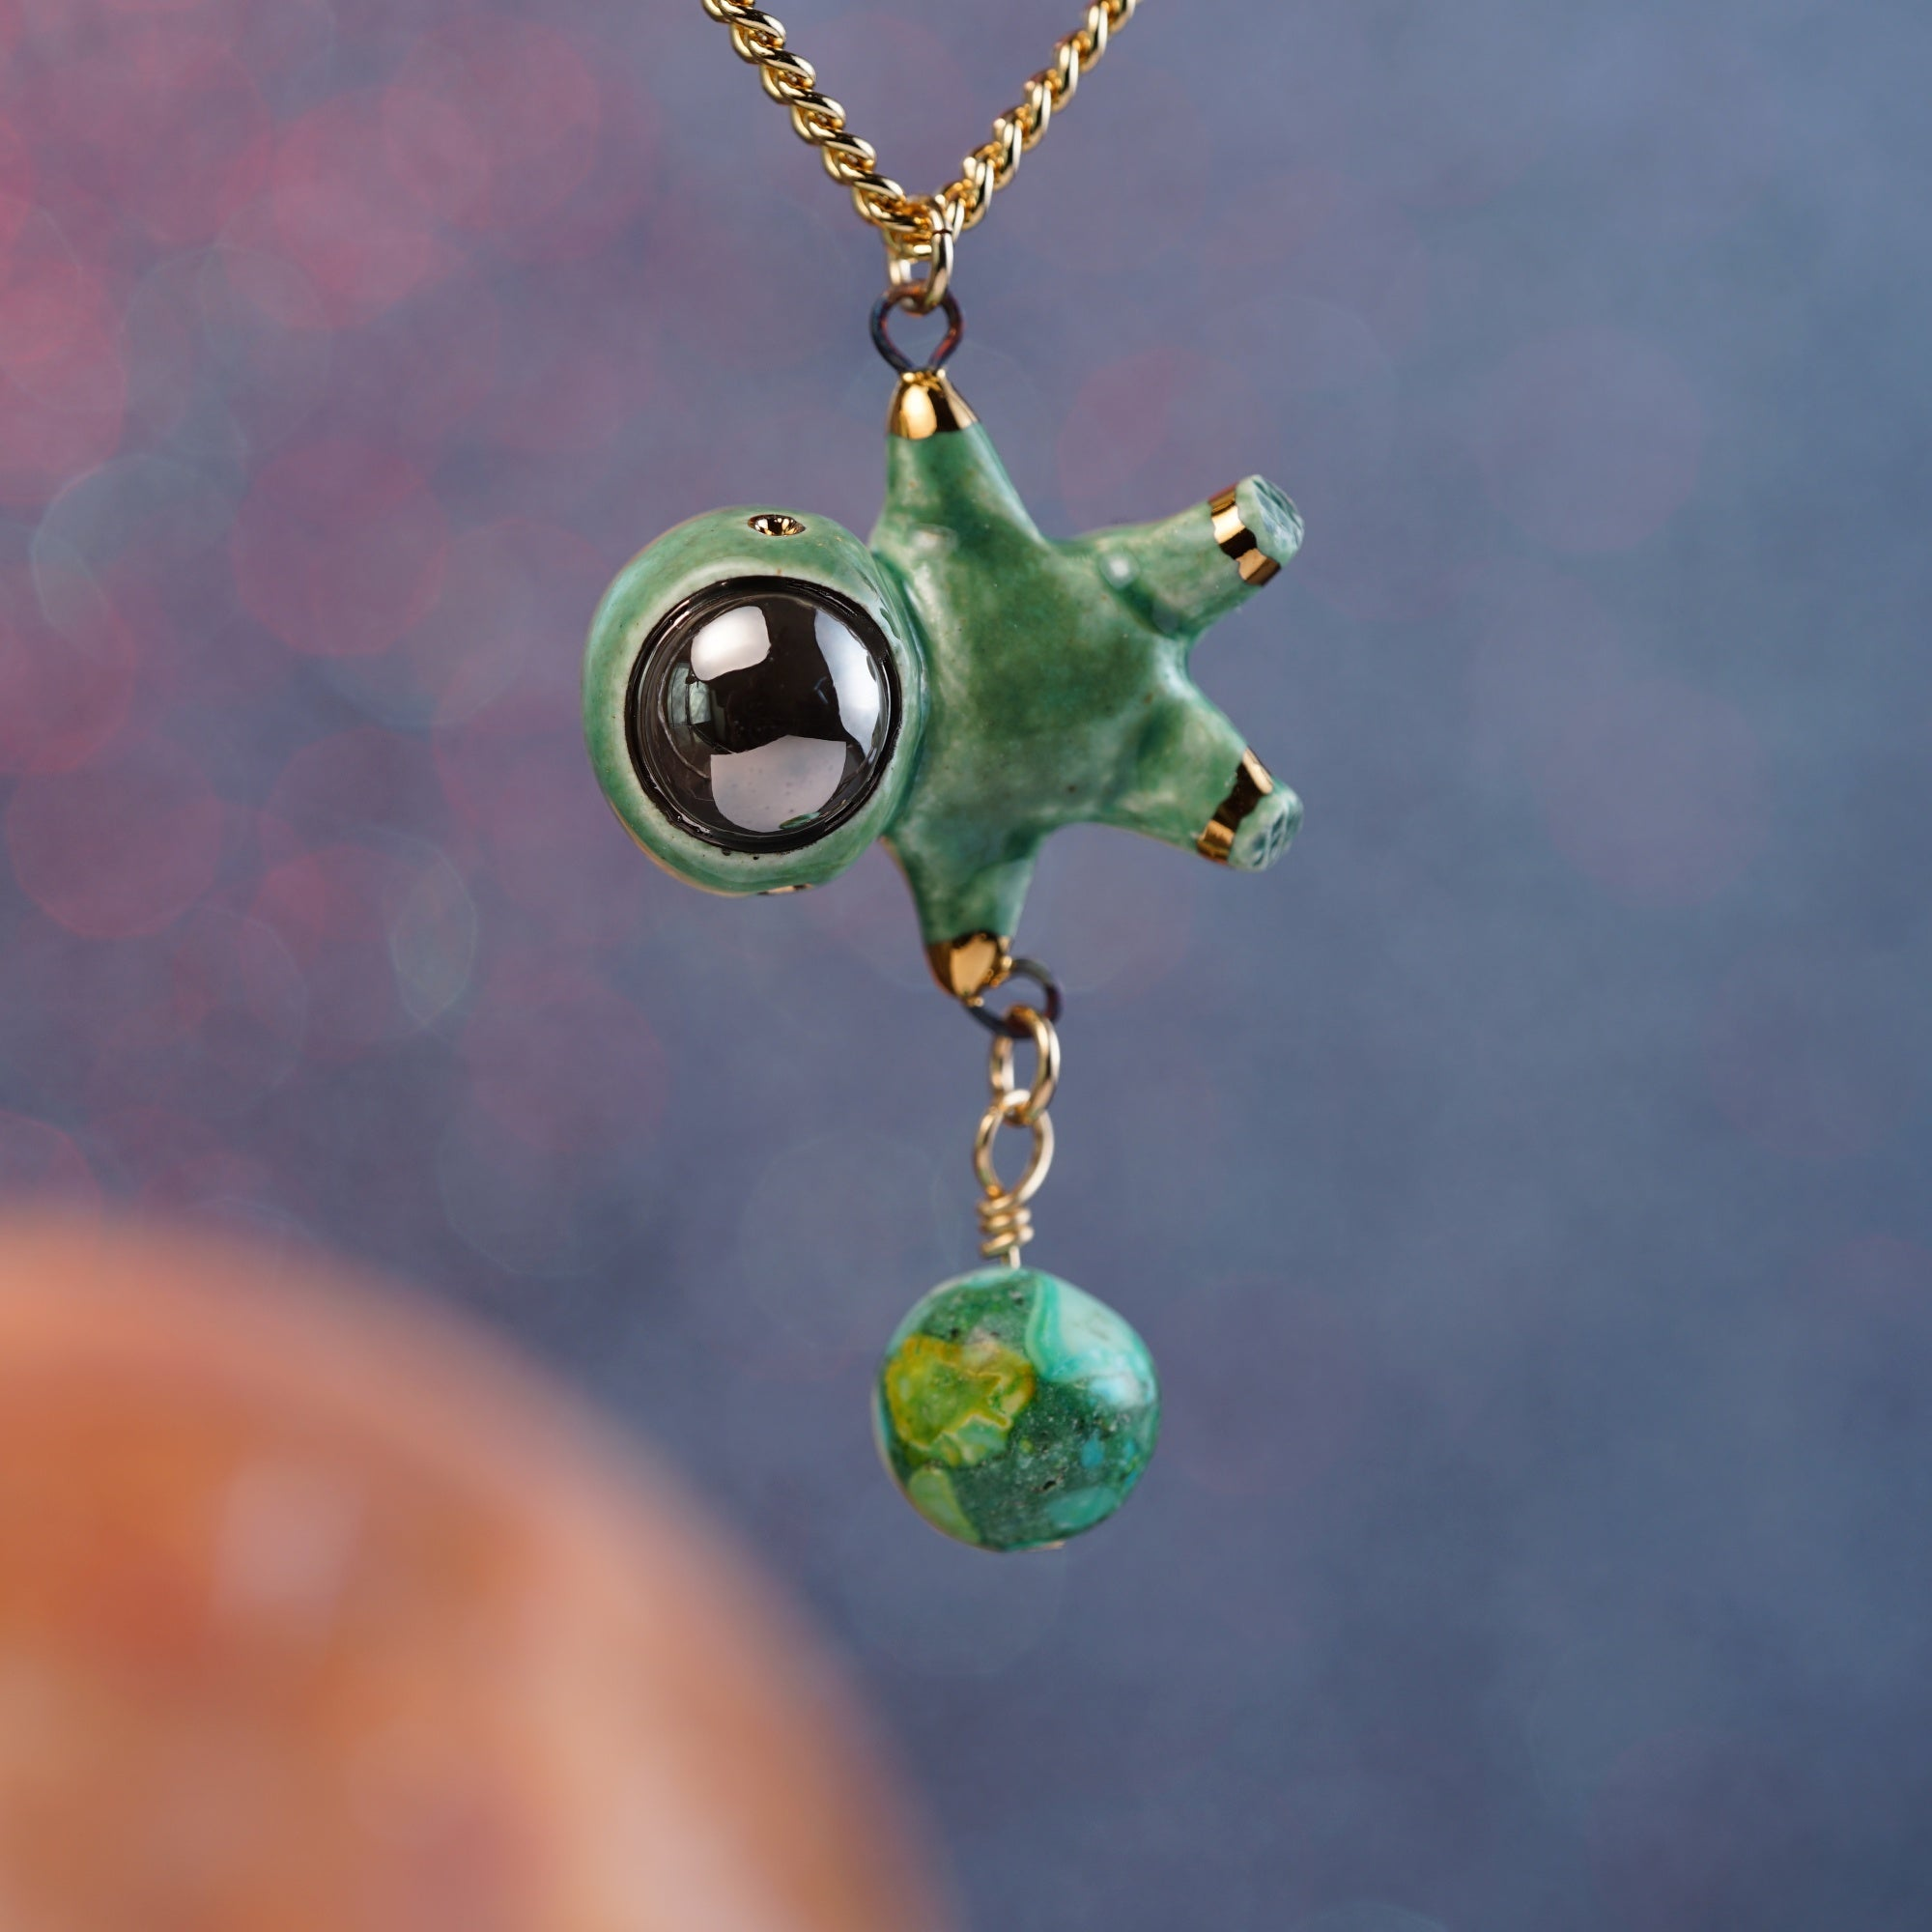 Floating Charm Astronaut Necklace